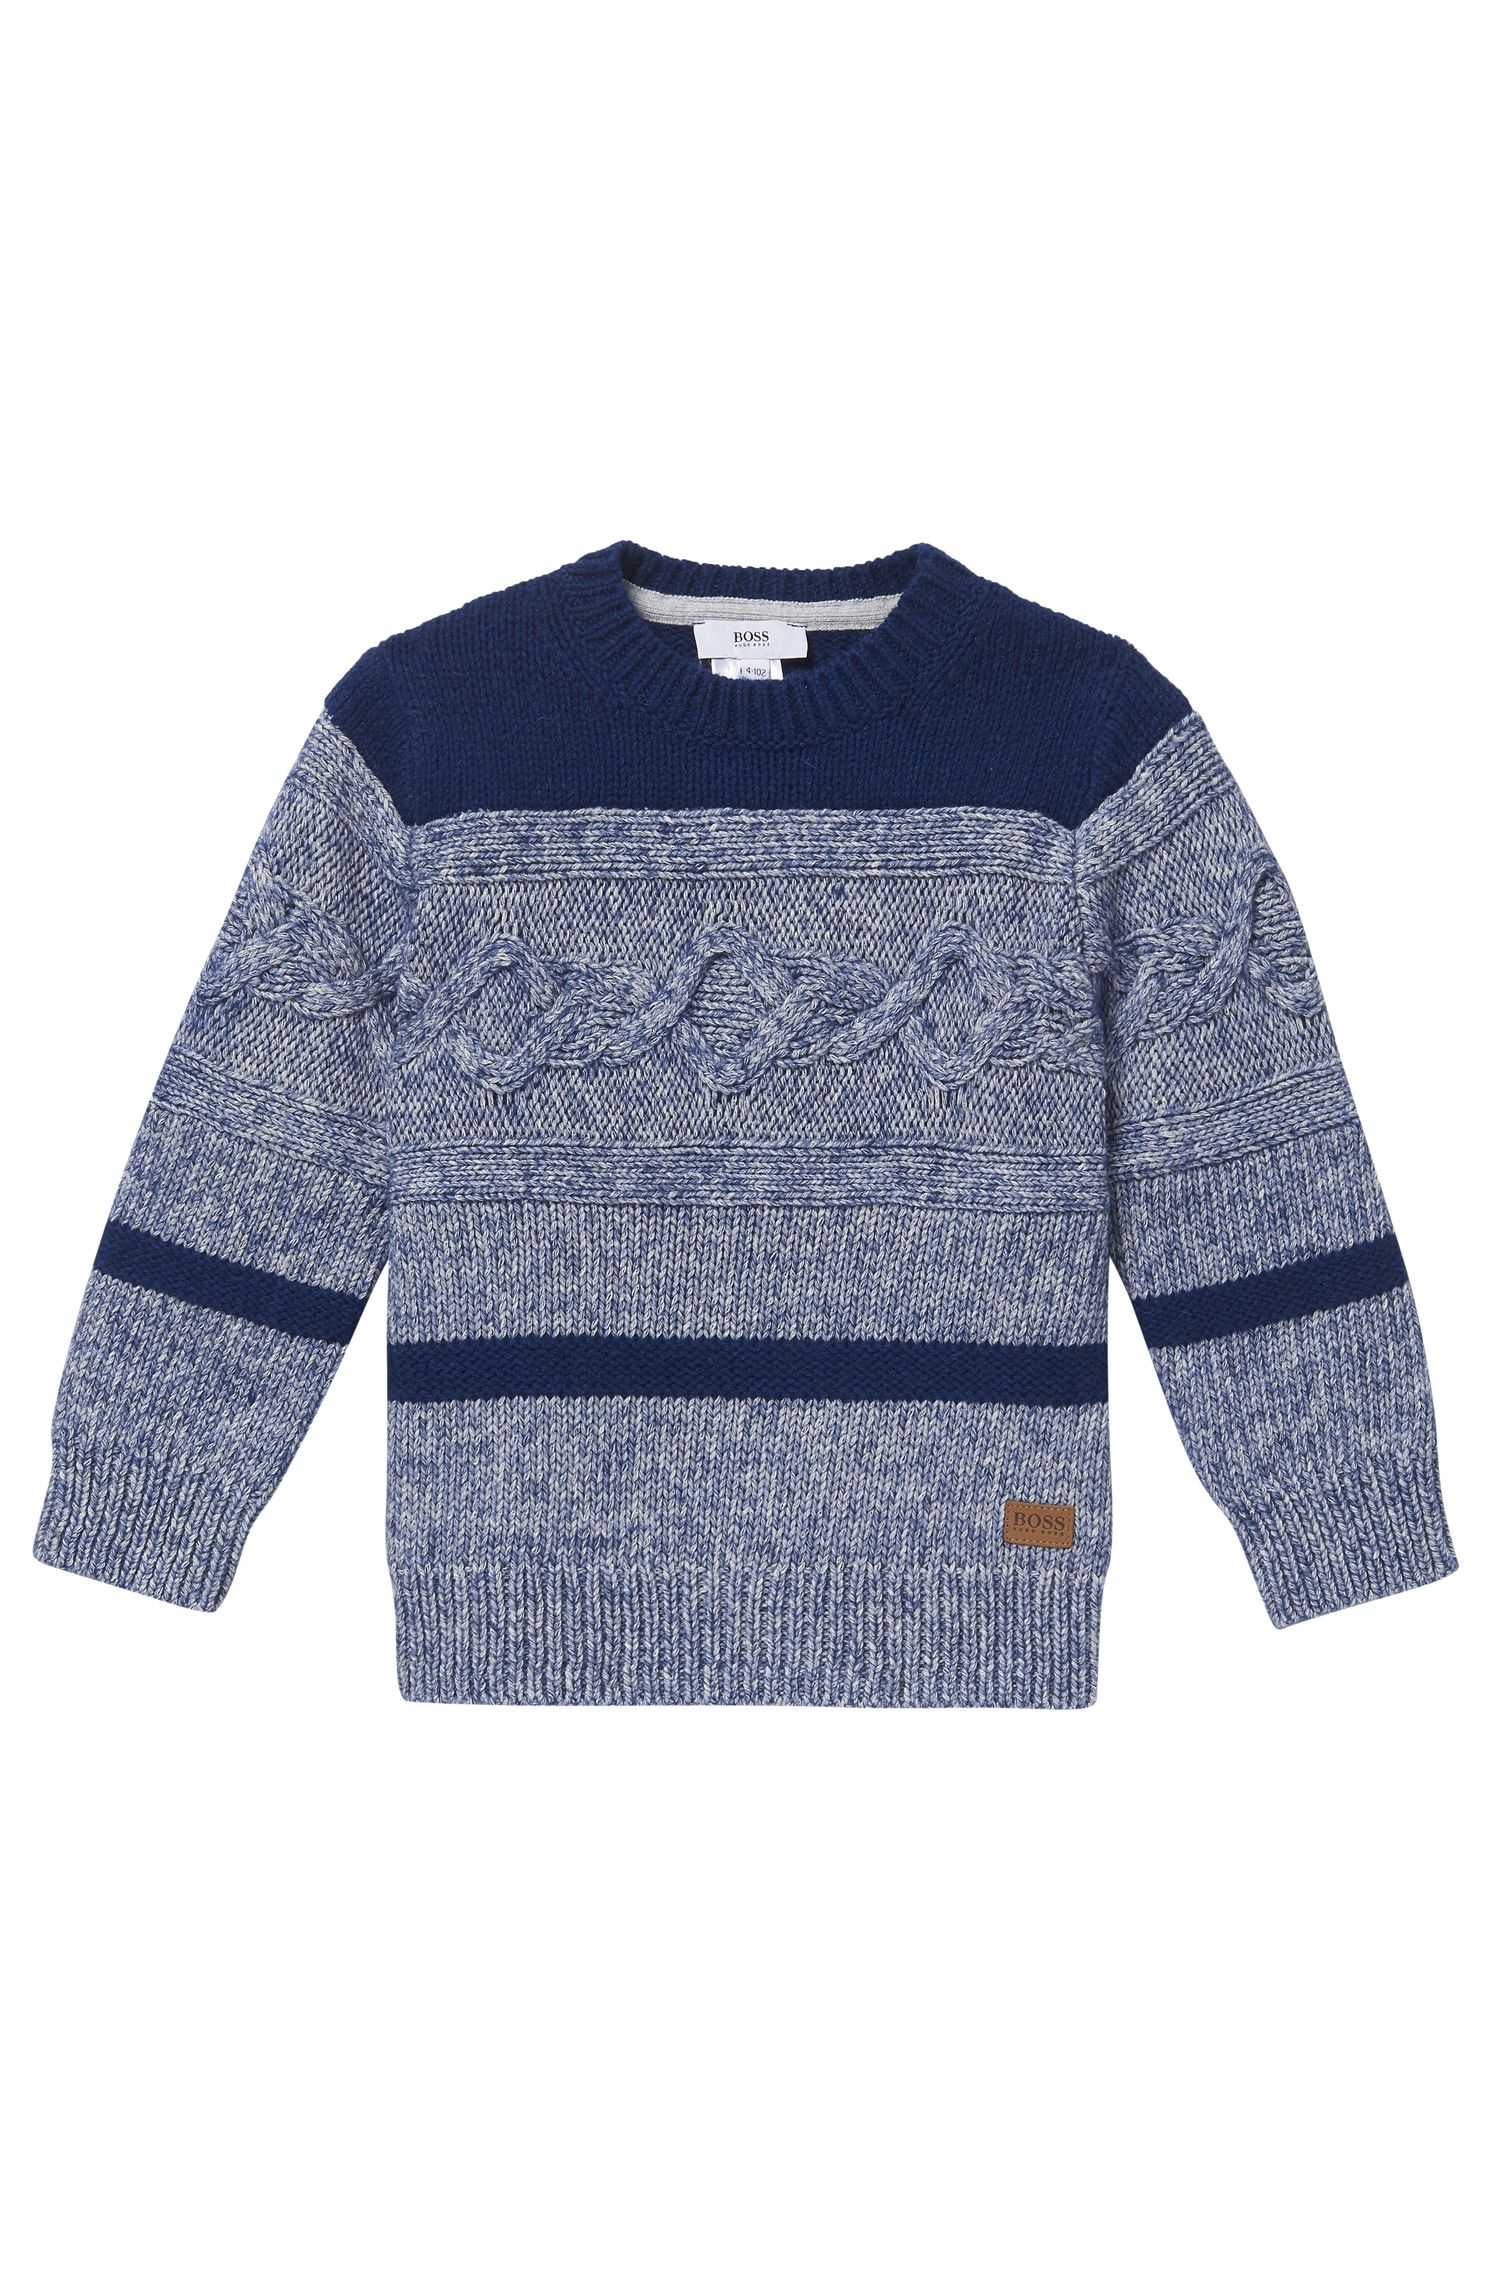 'J25A26' | Boys Cotton Cable Sweater